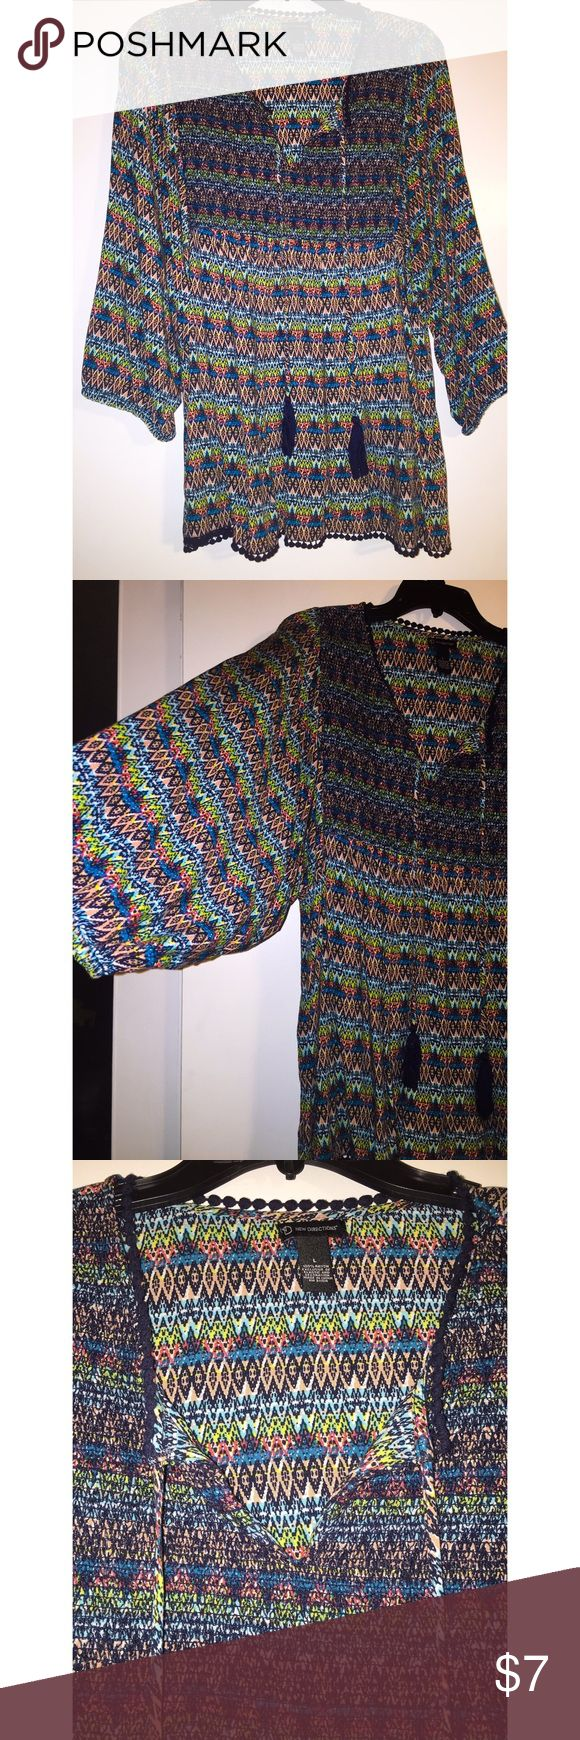 New Directions Smock Top This Aztec print top has vibrant colors and large sleeves with two hanging tassels. Worn once. Excellent condition! new directions Tops Blouses